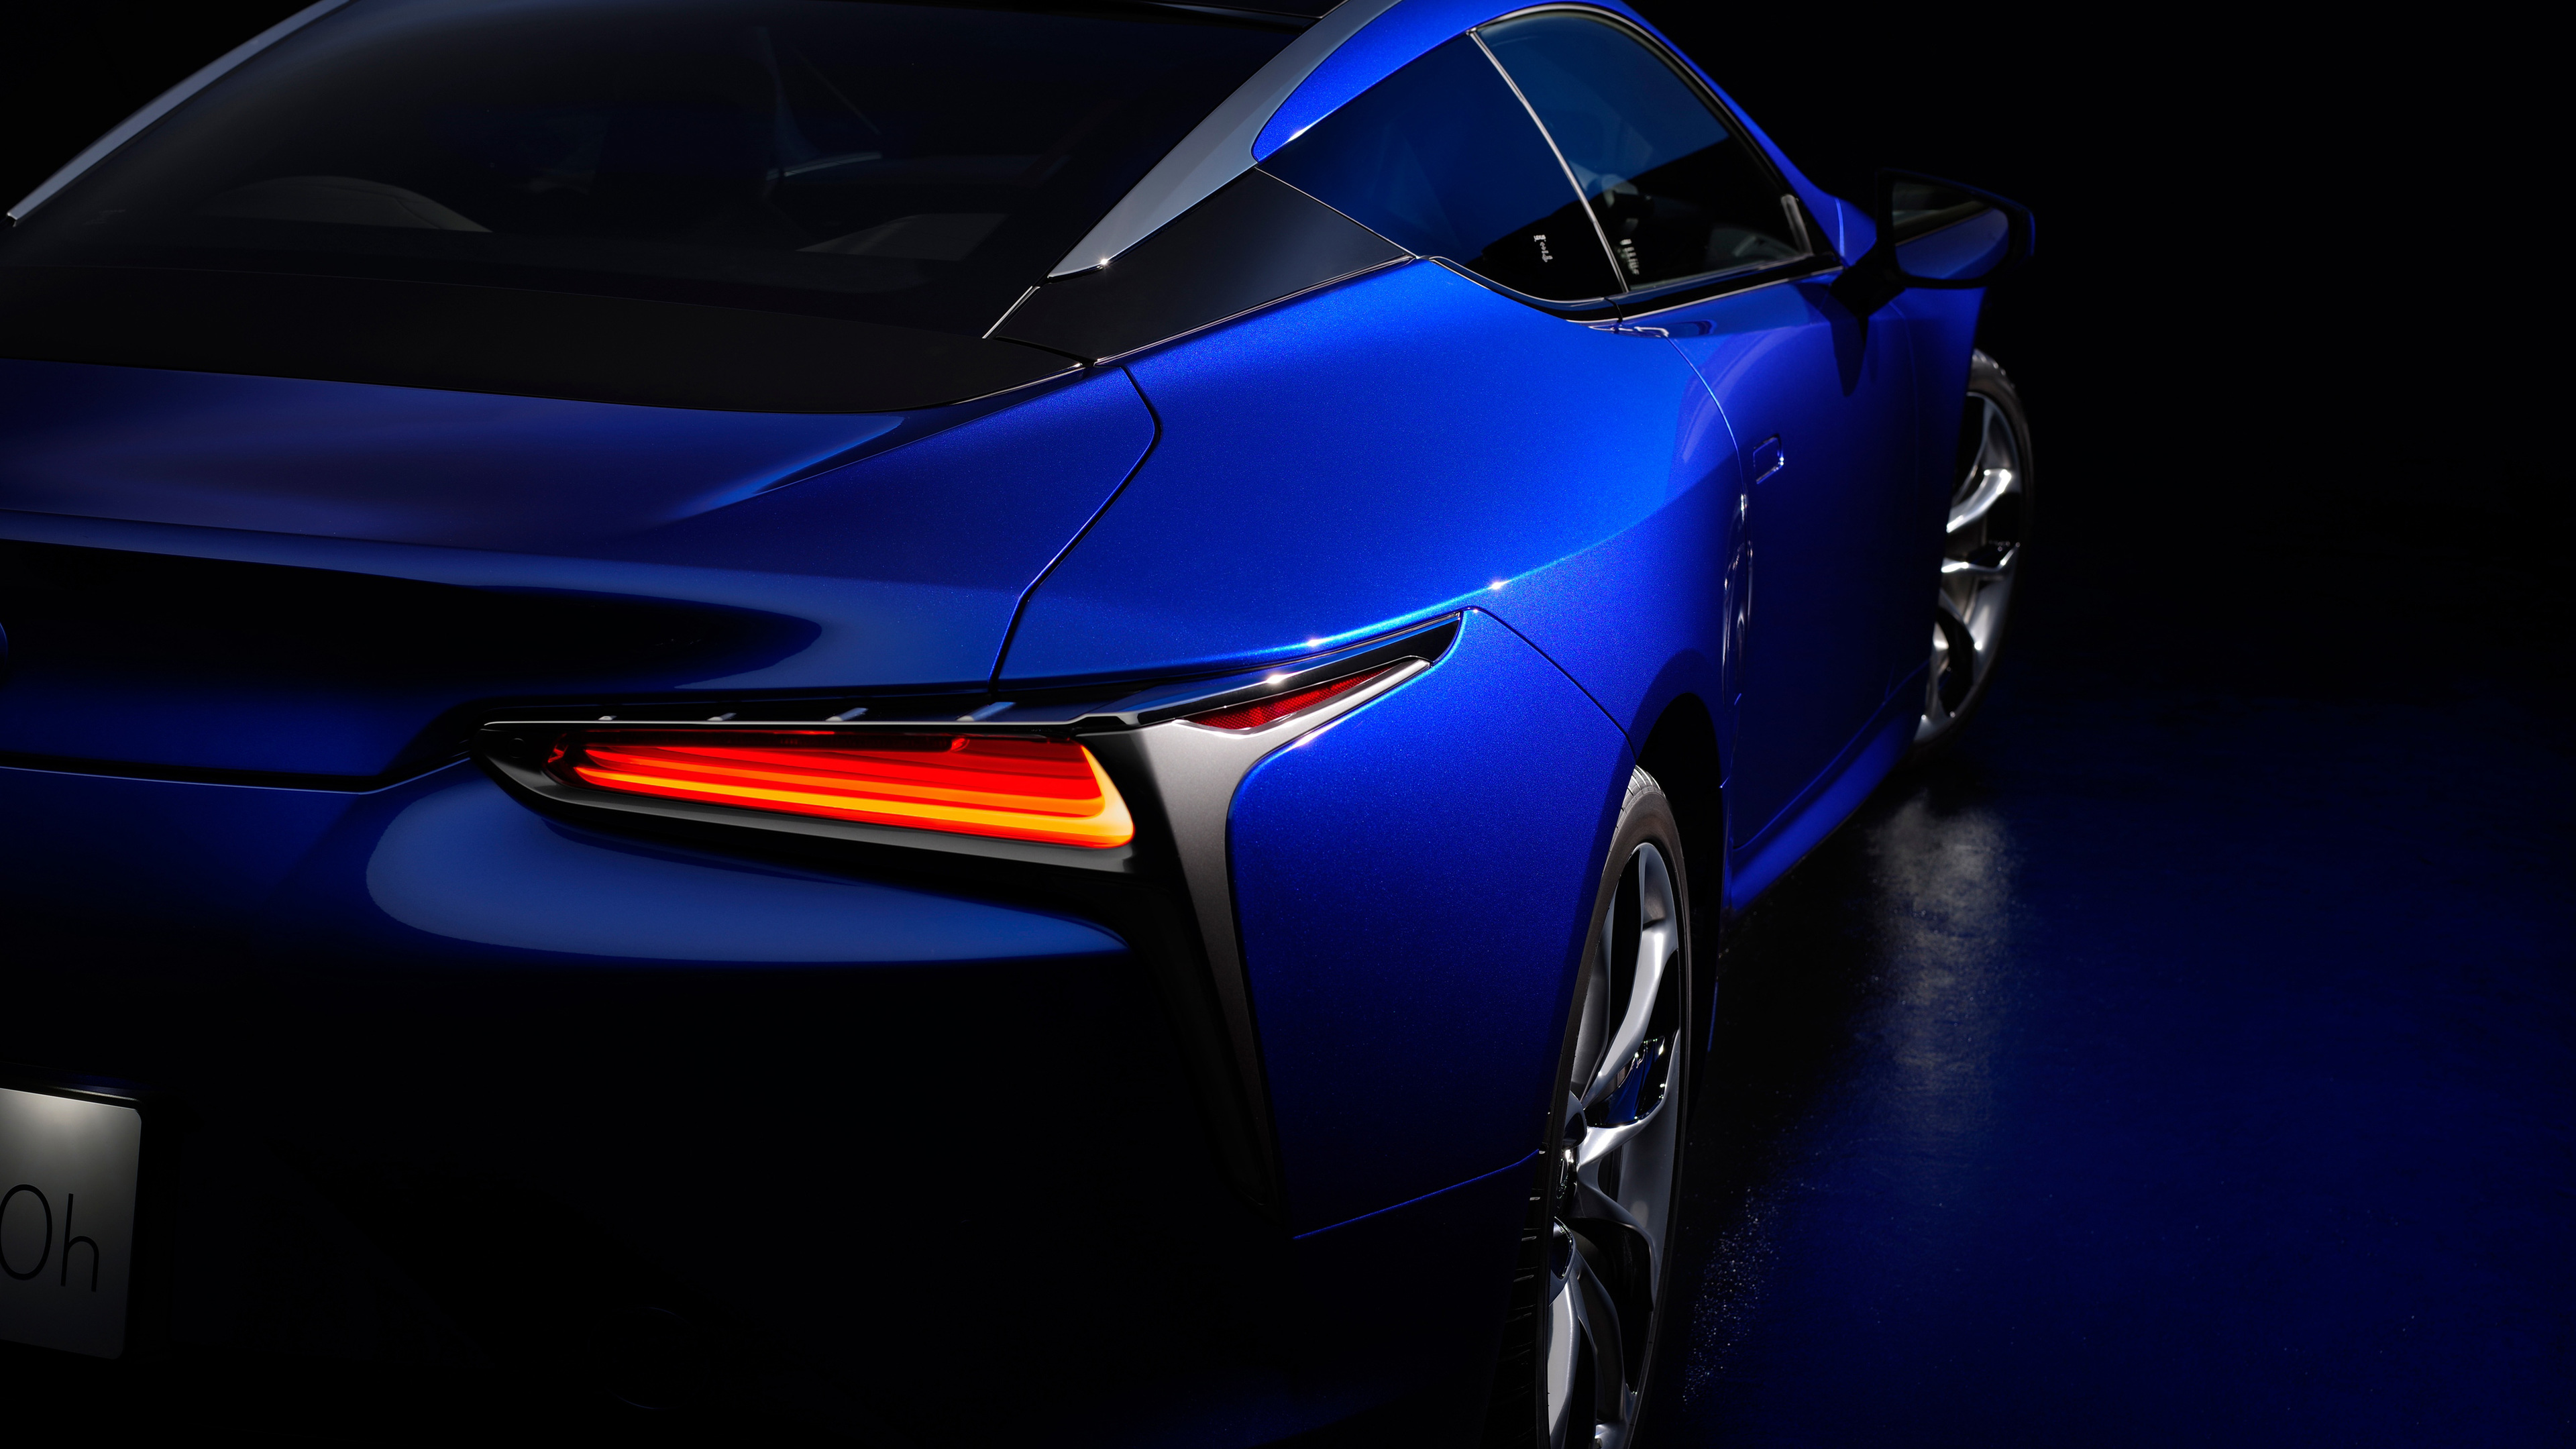 lexus lc 500h structural blue 2018 rear 1539110733 - Lexus LC 500h Structural Blue 2018 Rear - lexus wallpapers, lexus lc 500 wallpapers, hd-wallpapers, 4k-wallpapers, 2018 cars wallpapers